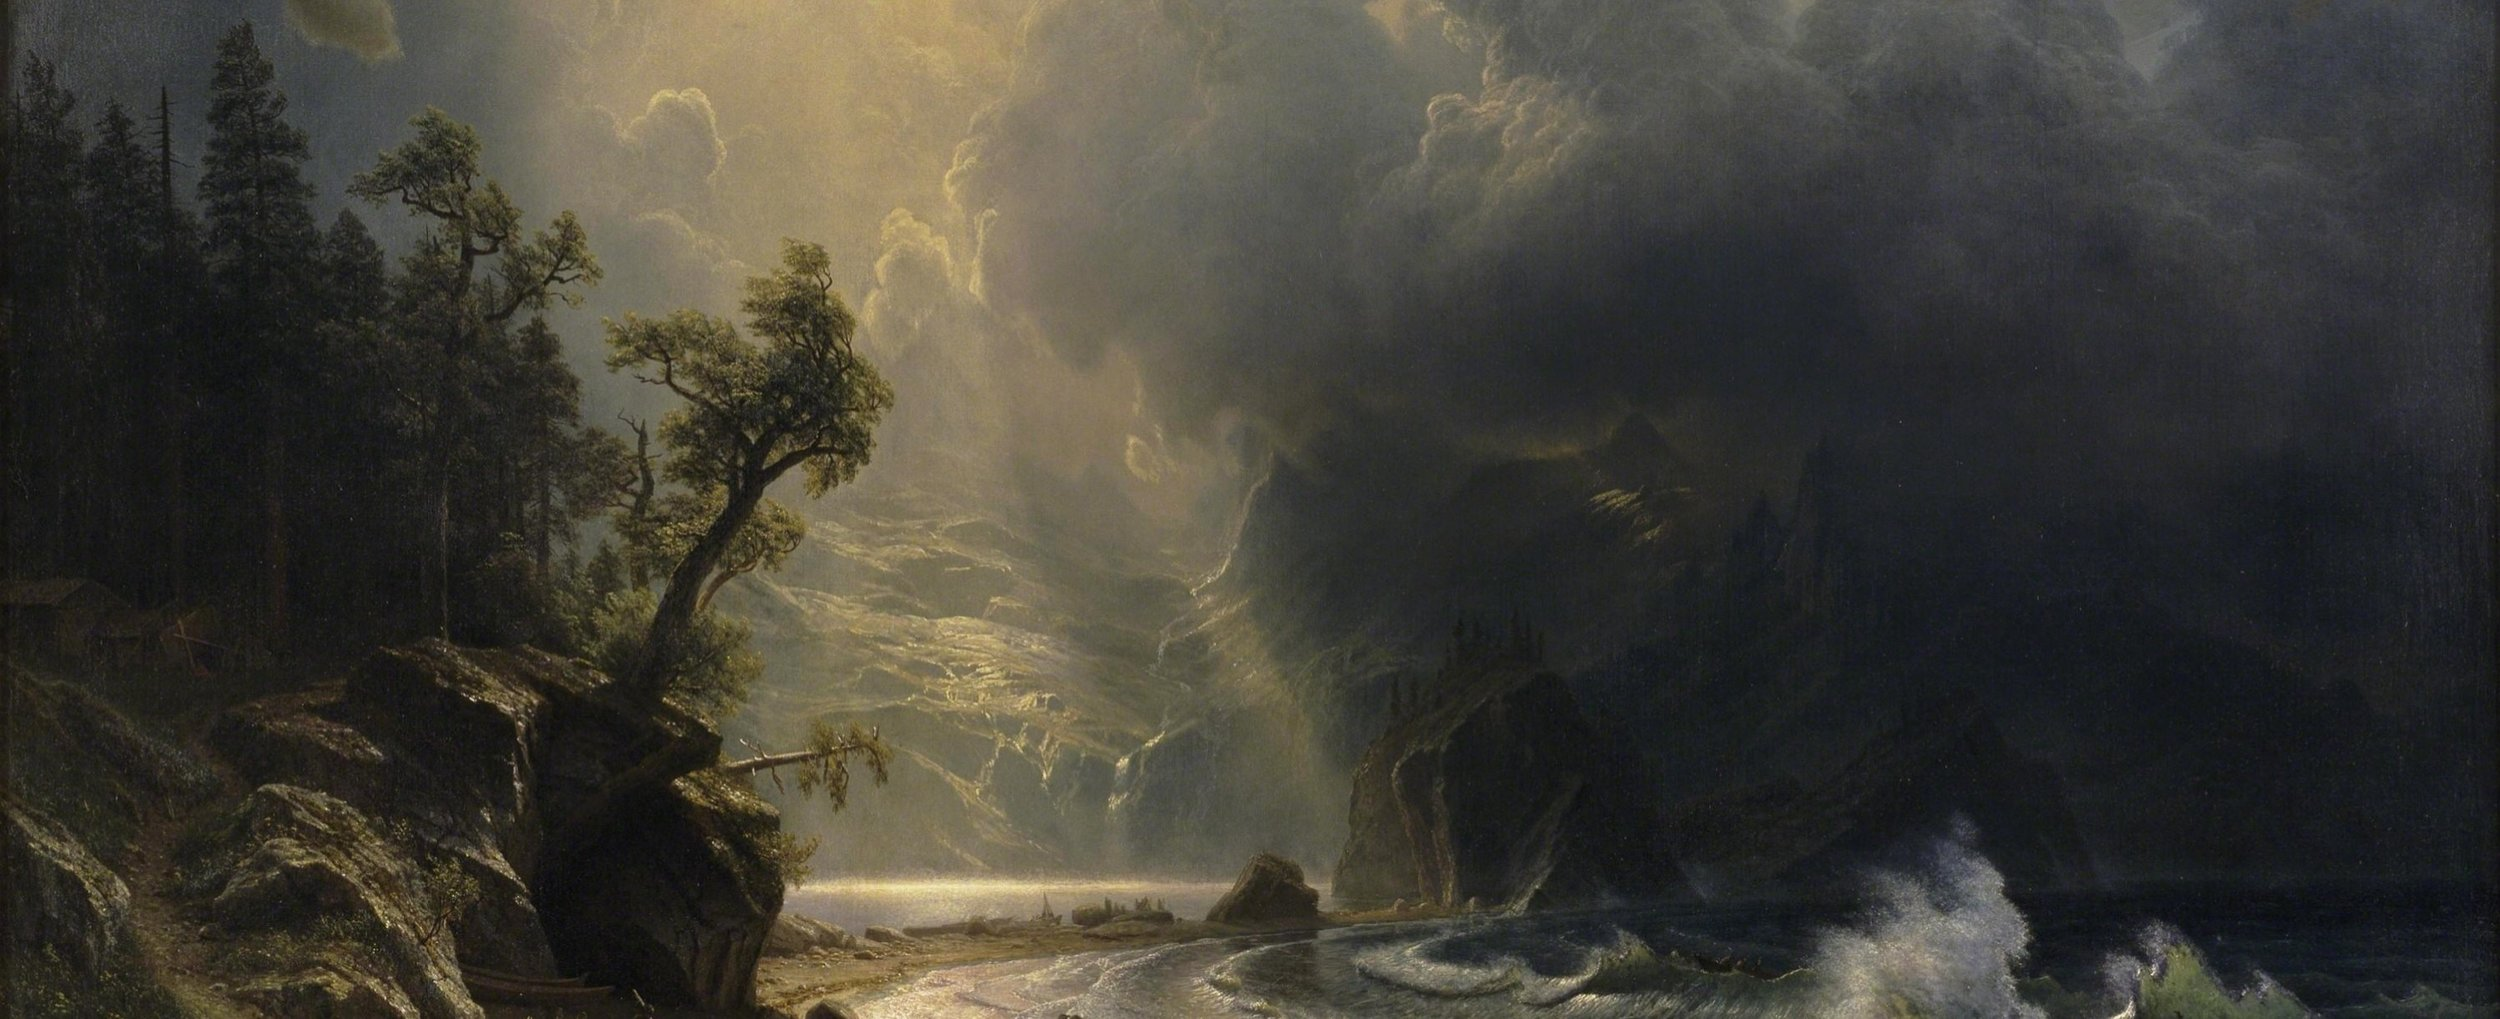 Albert_Bierstadt_-_Puget_Sound_on_the_Pacific_Coast_(1870) - Edited.jpg